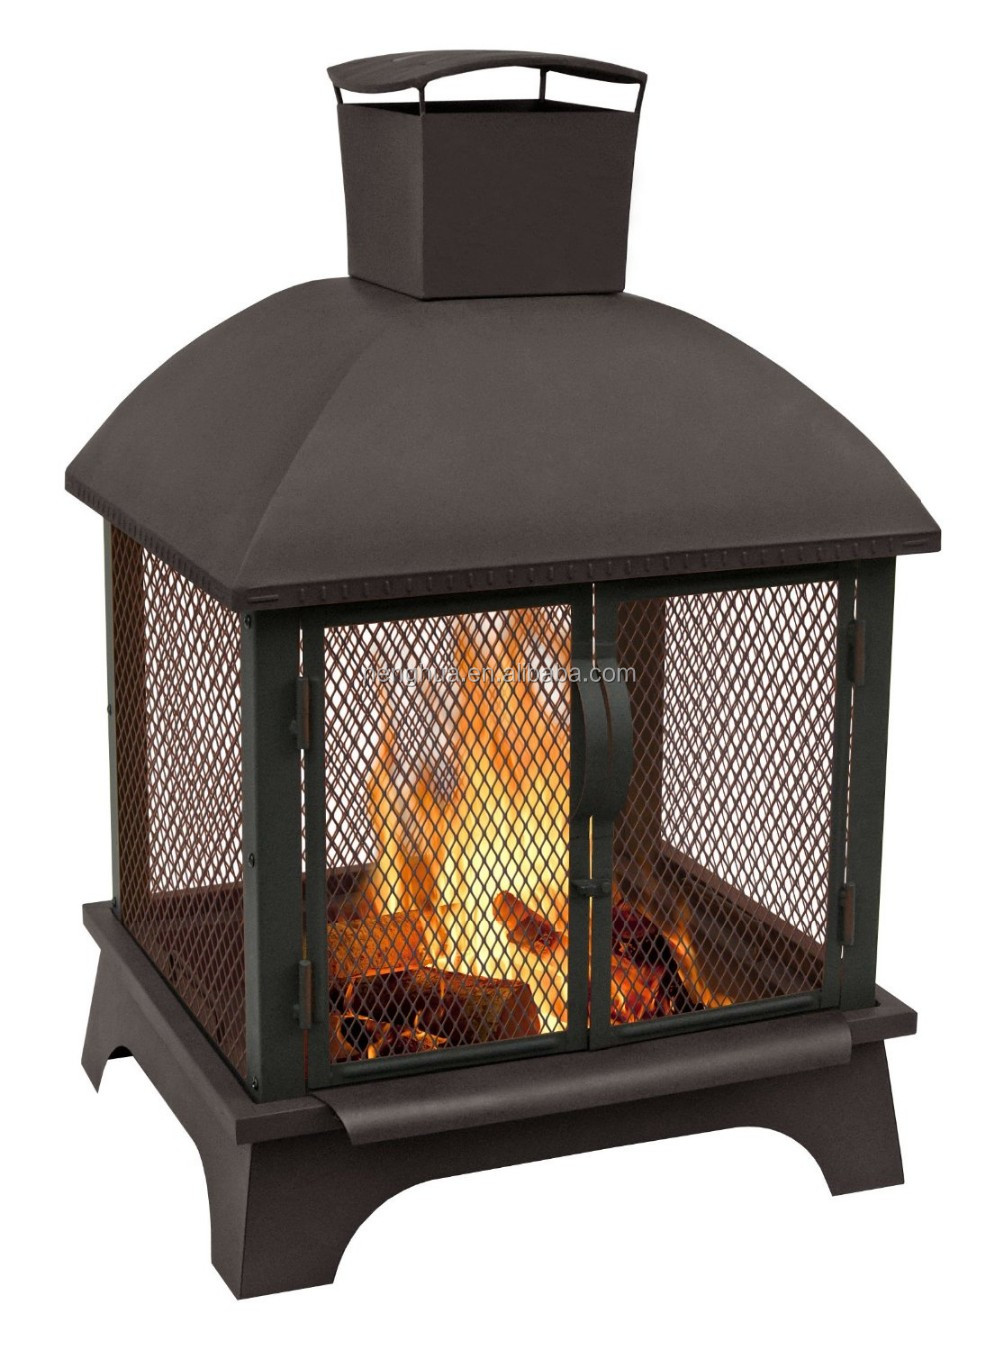 Hot sale fire chimenea, outdoor fire pit